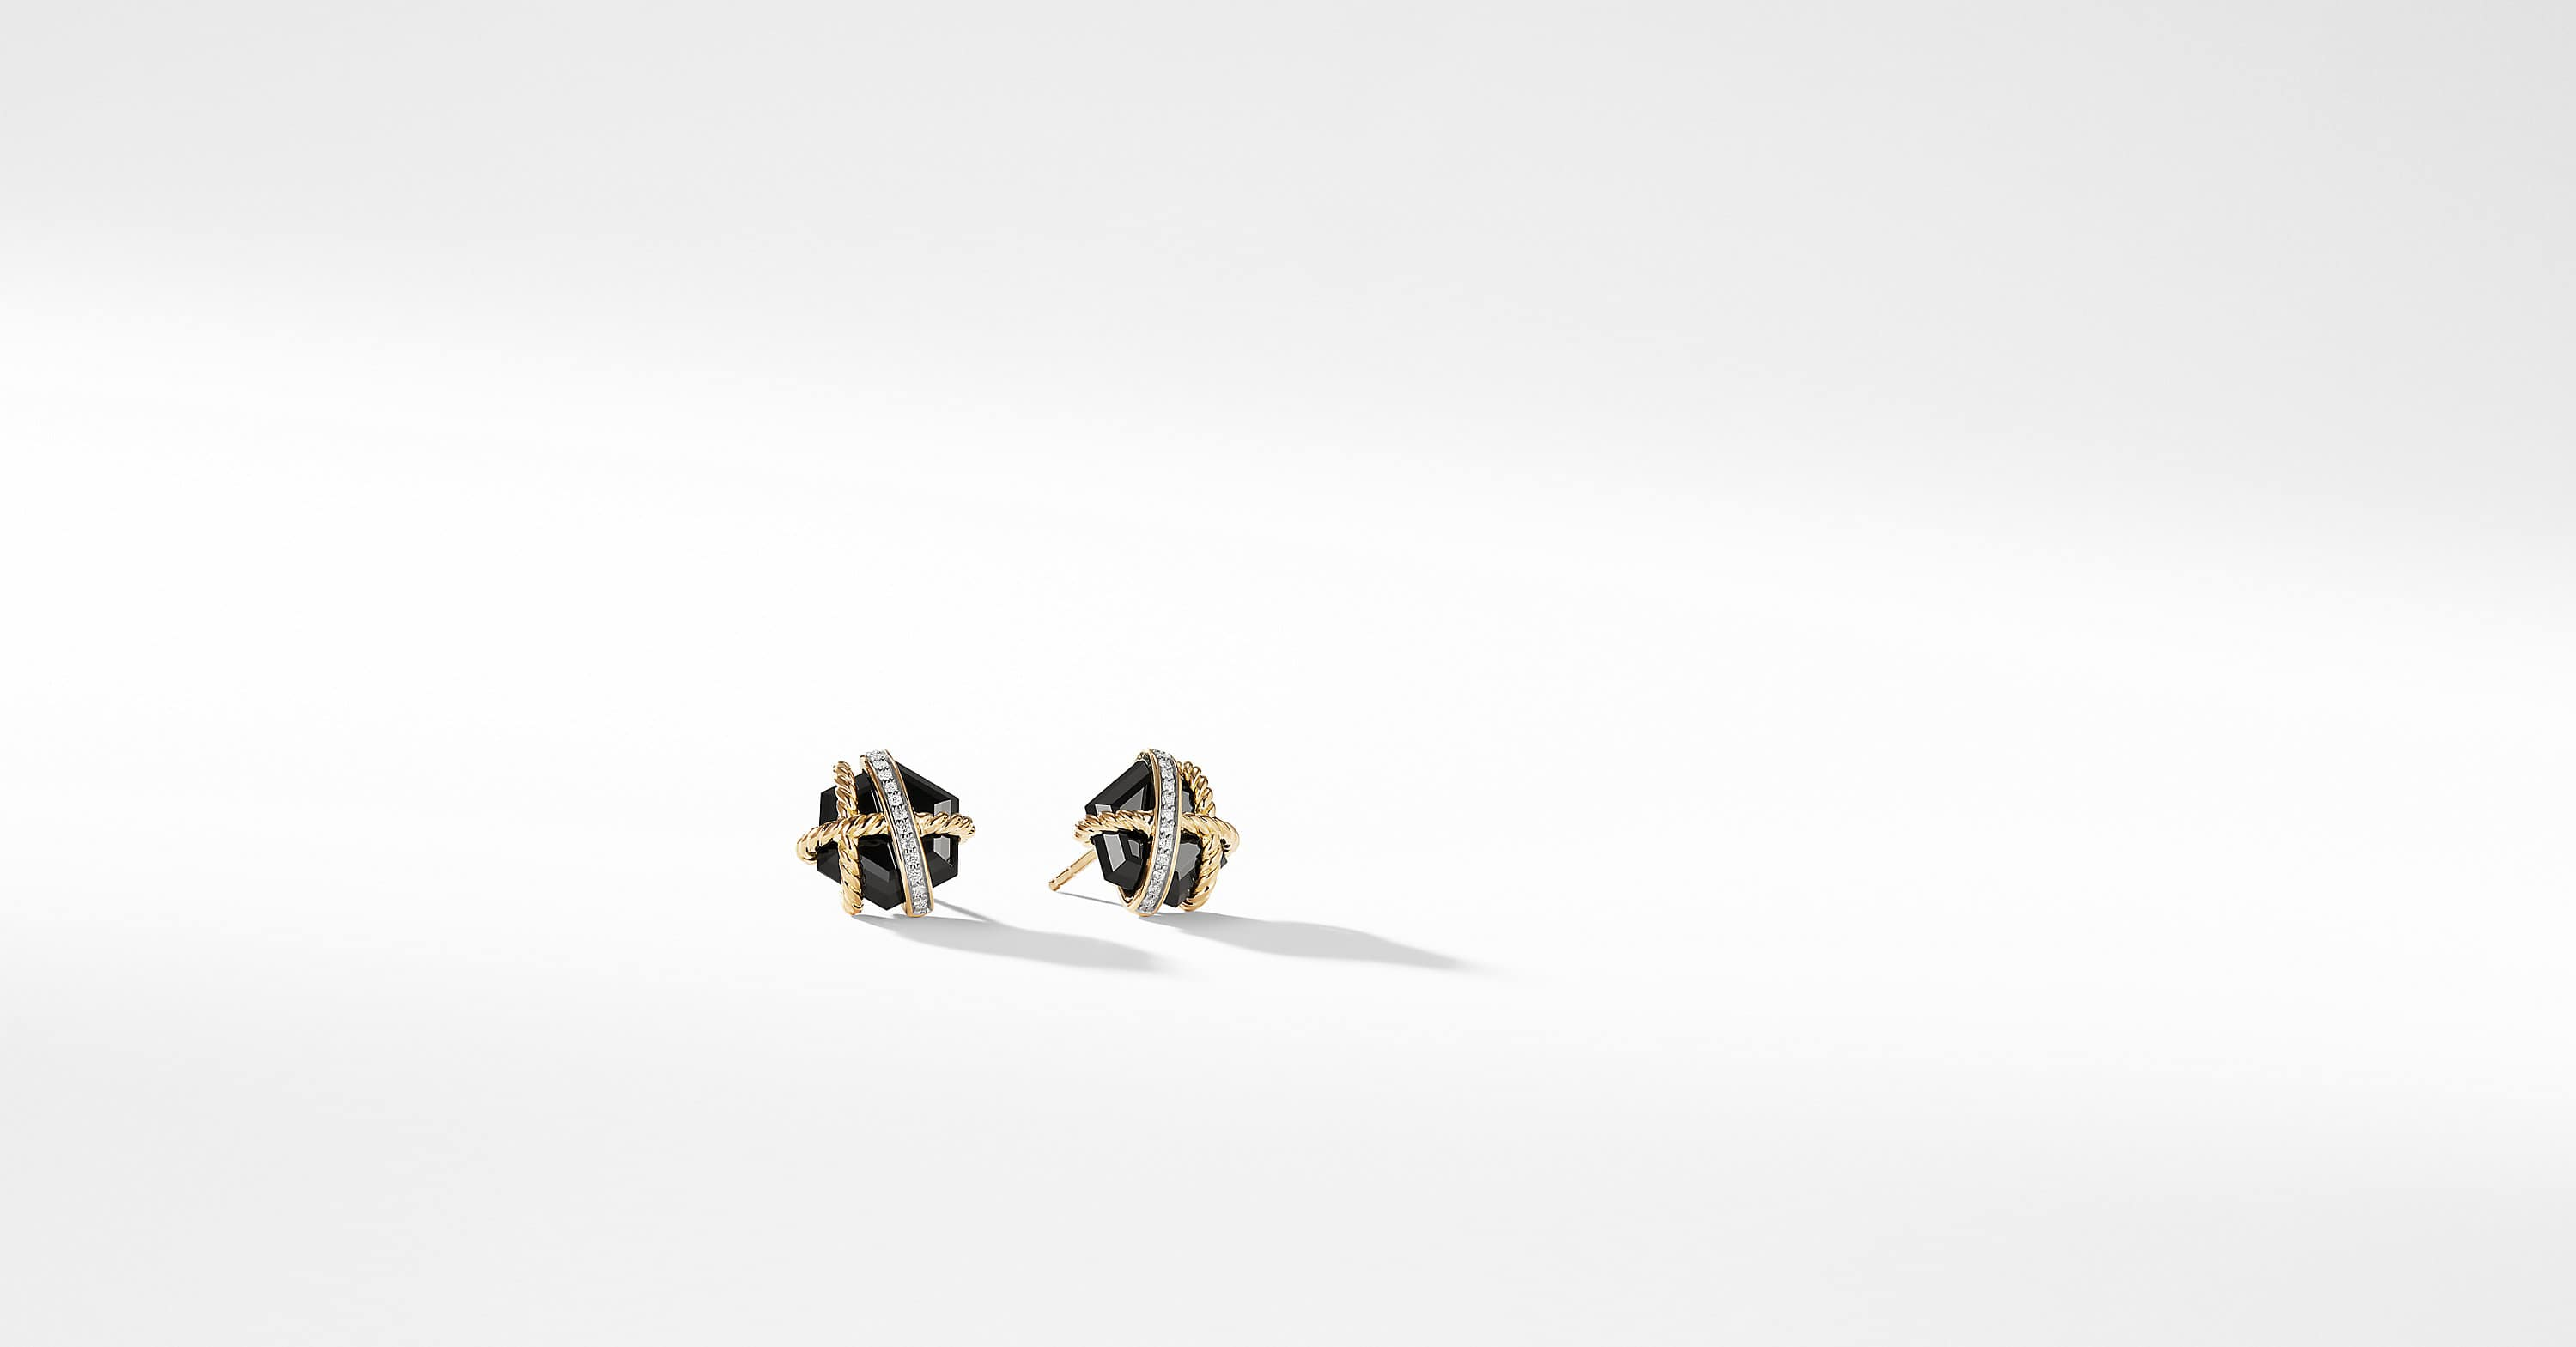 Cable Wrap Earrings With Diamonds in 18K Gold, 10mm